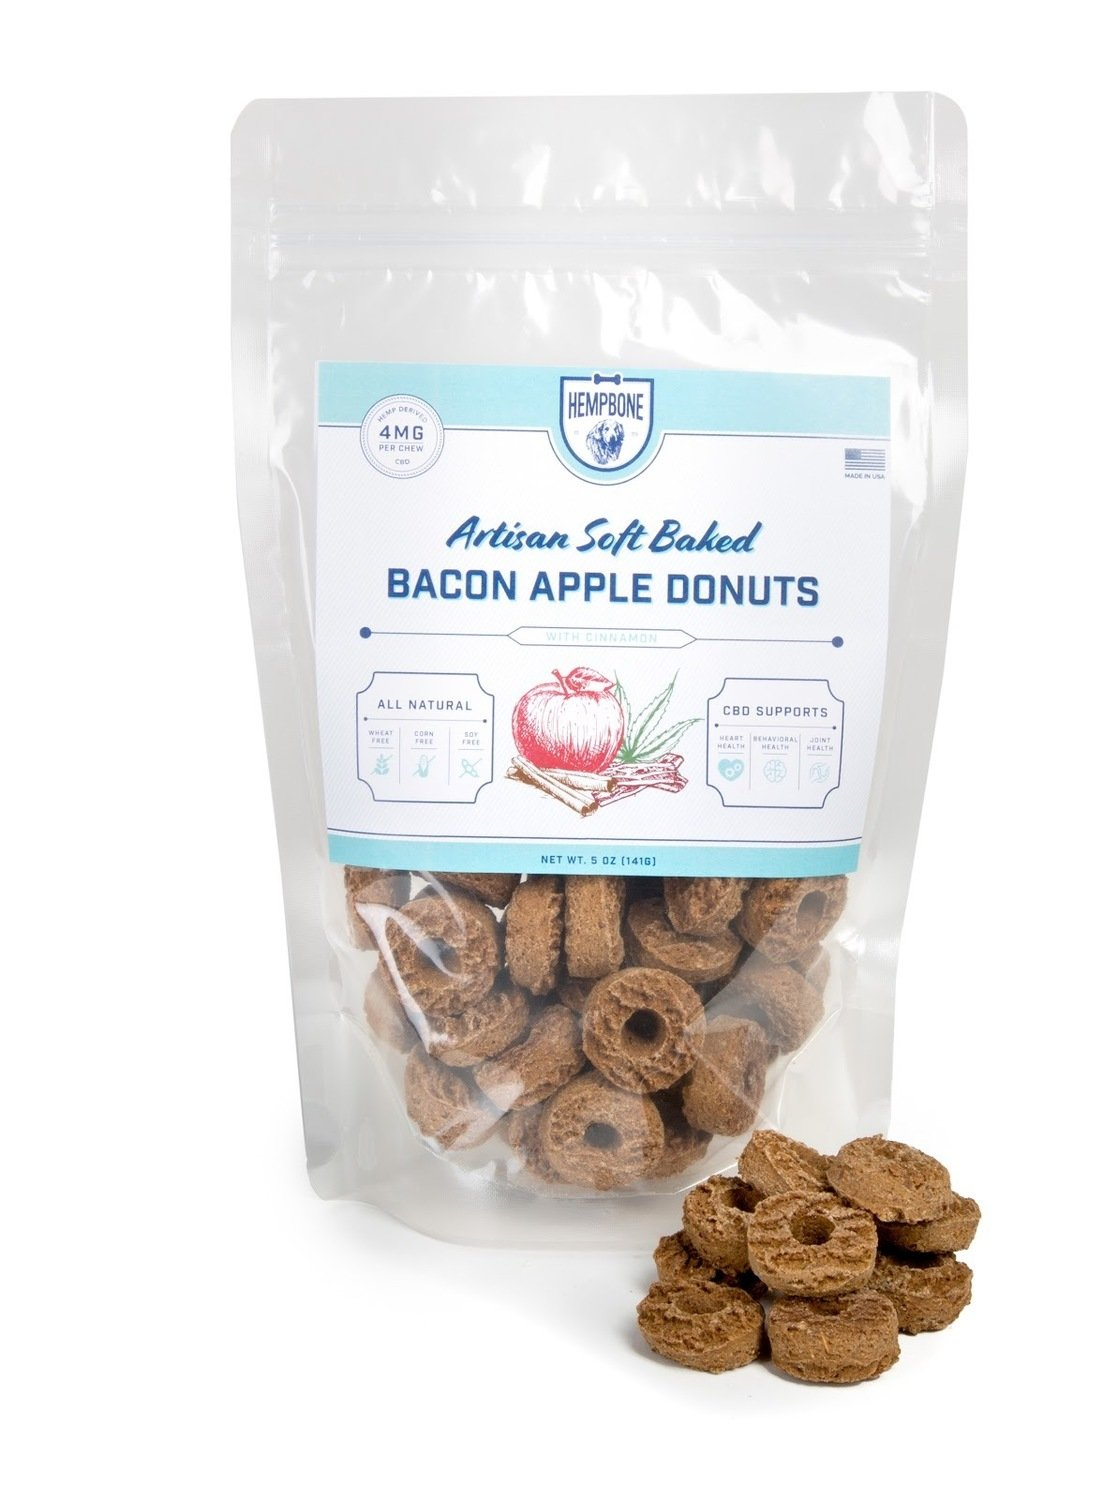 CBD for Pets | All Natural Pet Treat | HempBone Bacon Apple Donuts | 4mg CBD per chew |